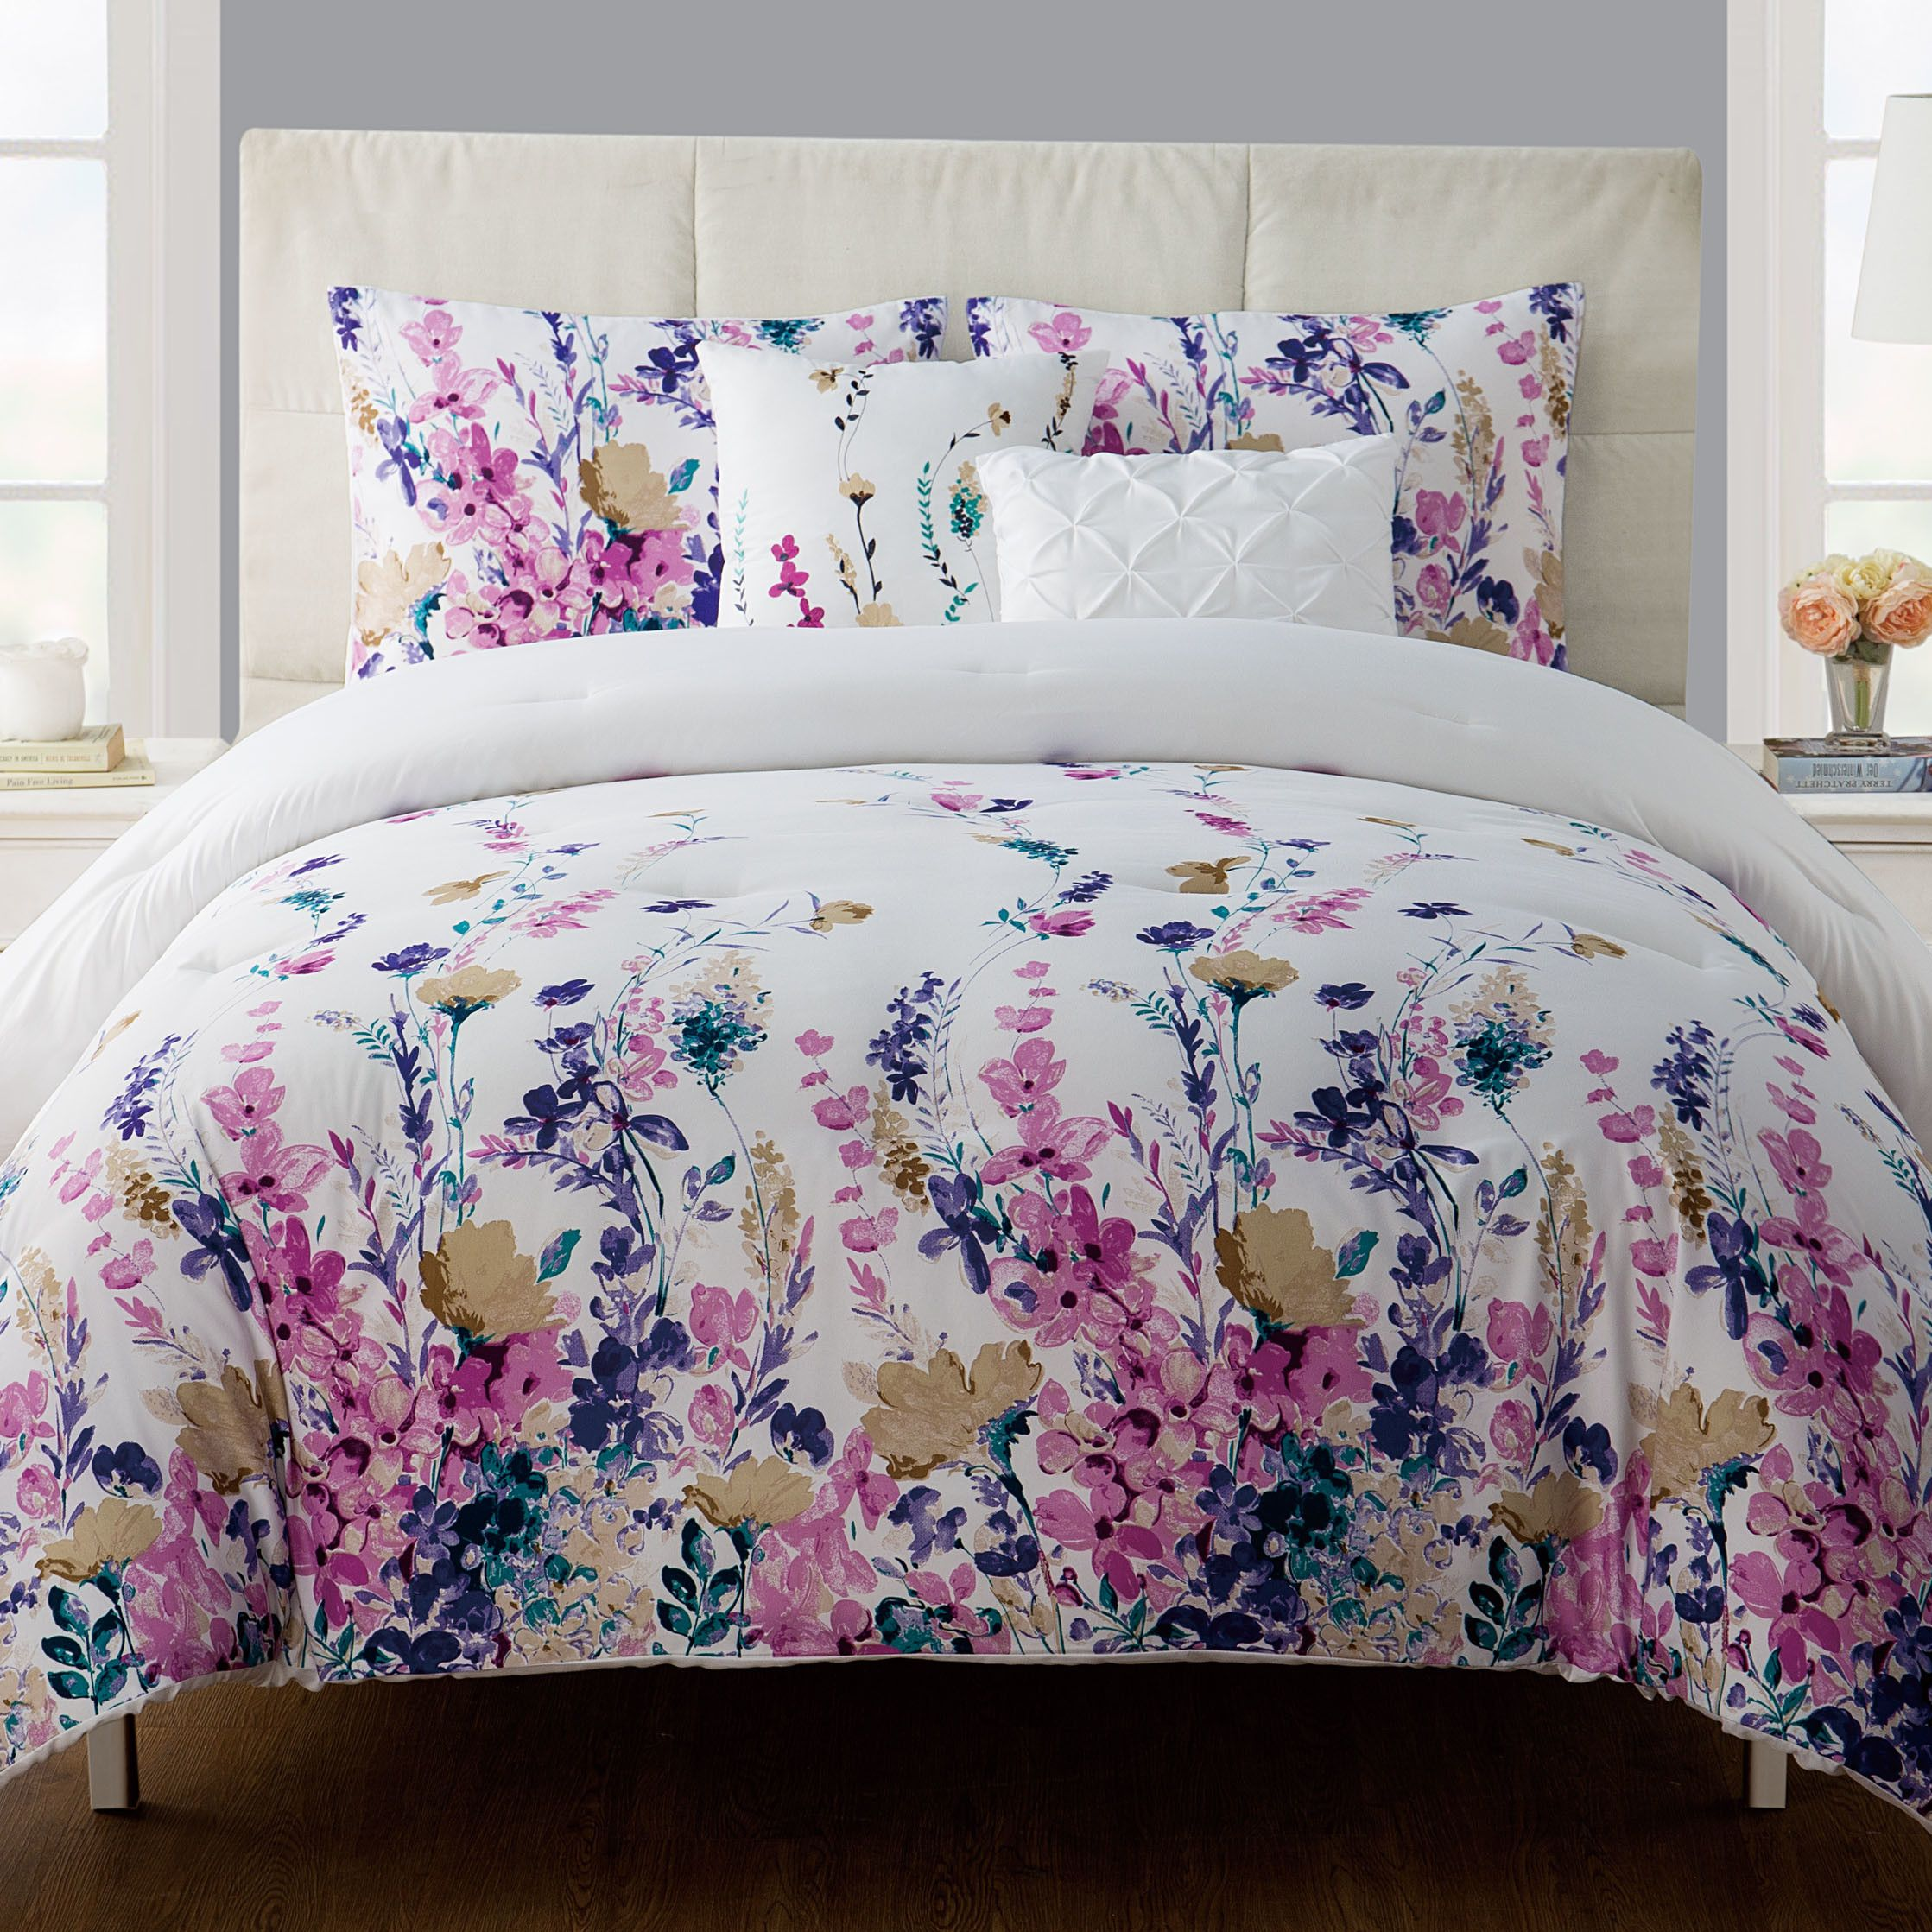 pressly comforter set  twin xl comforter and pillows - pressly comforter set